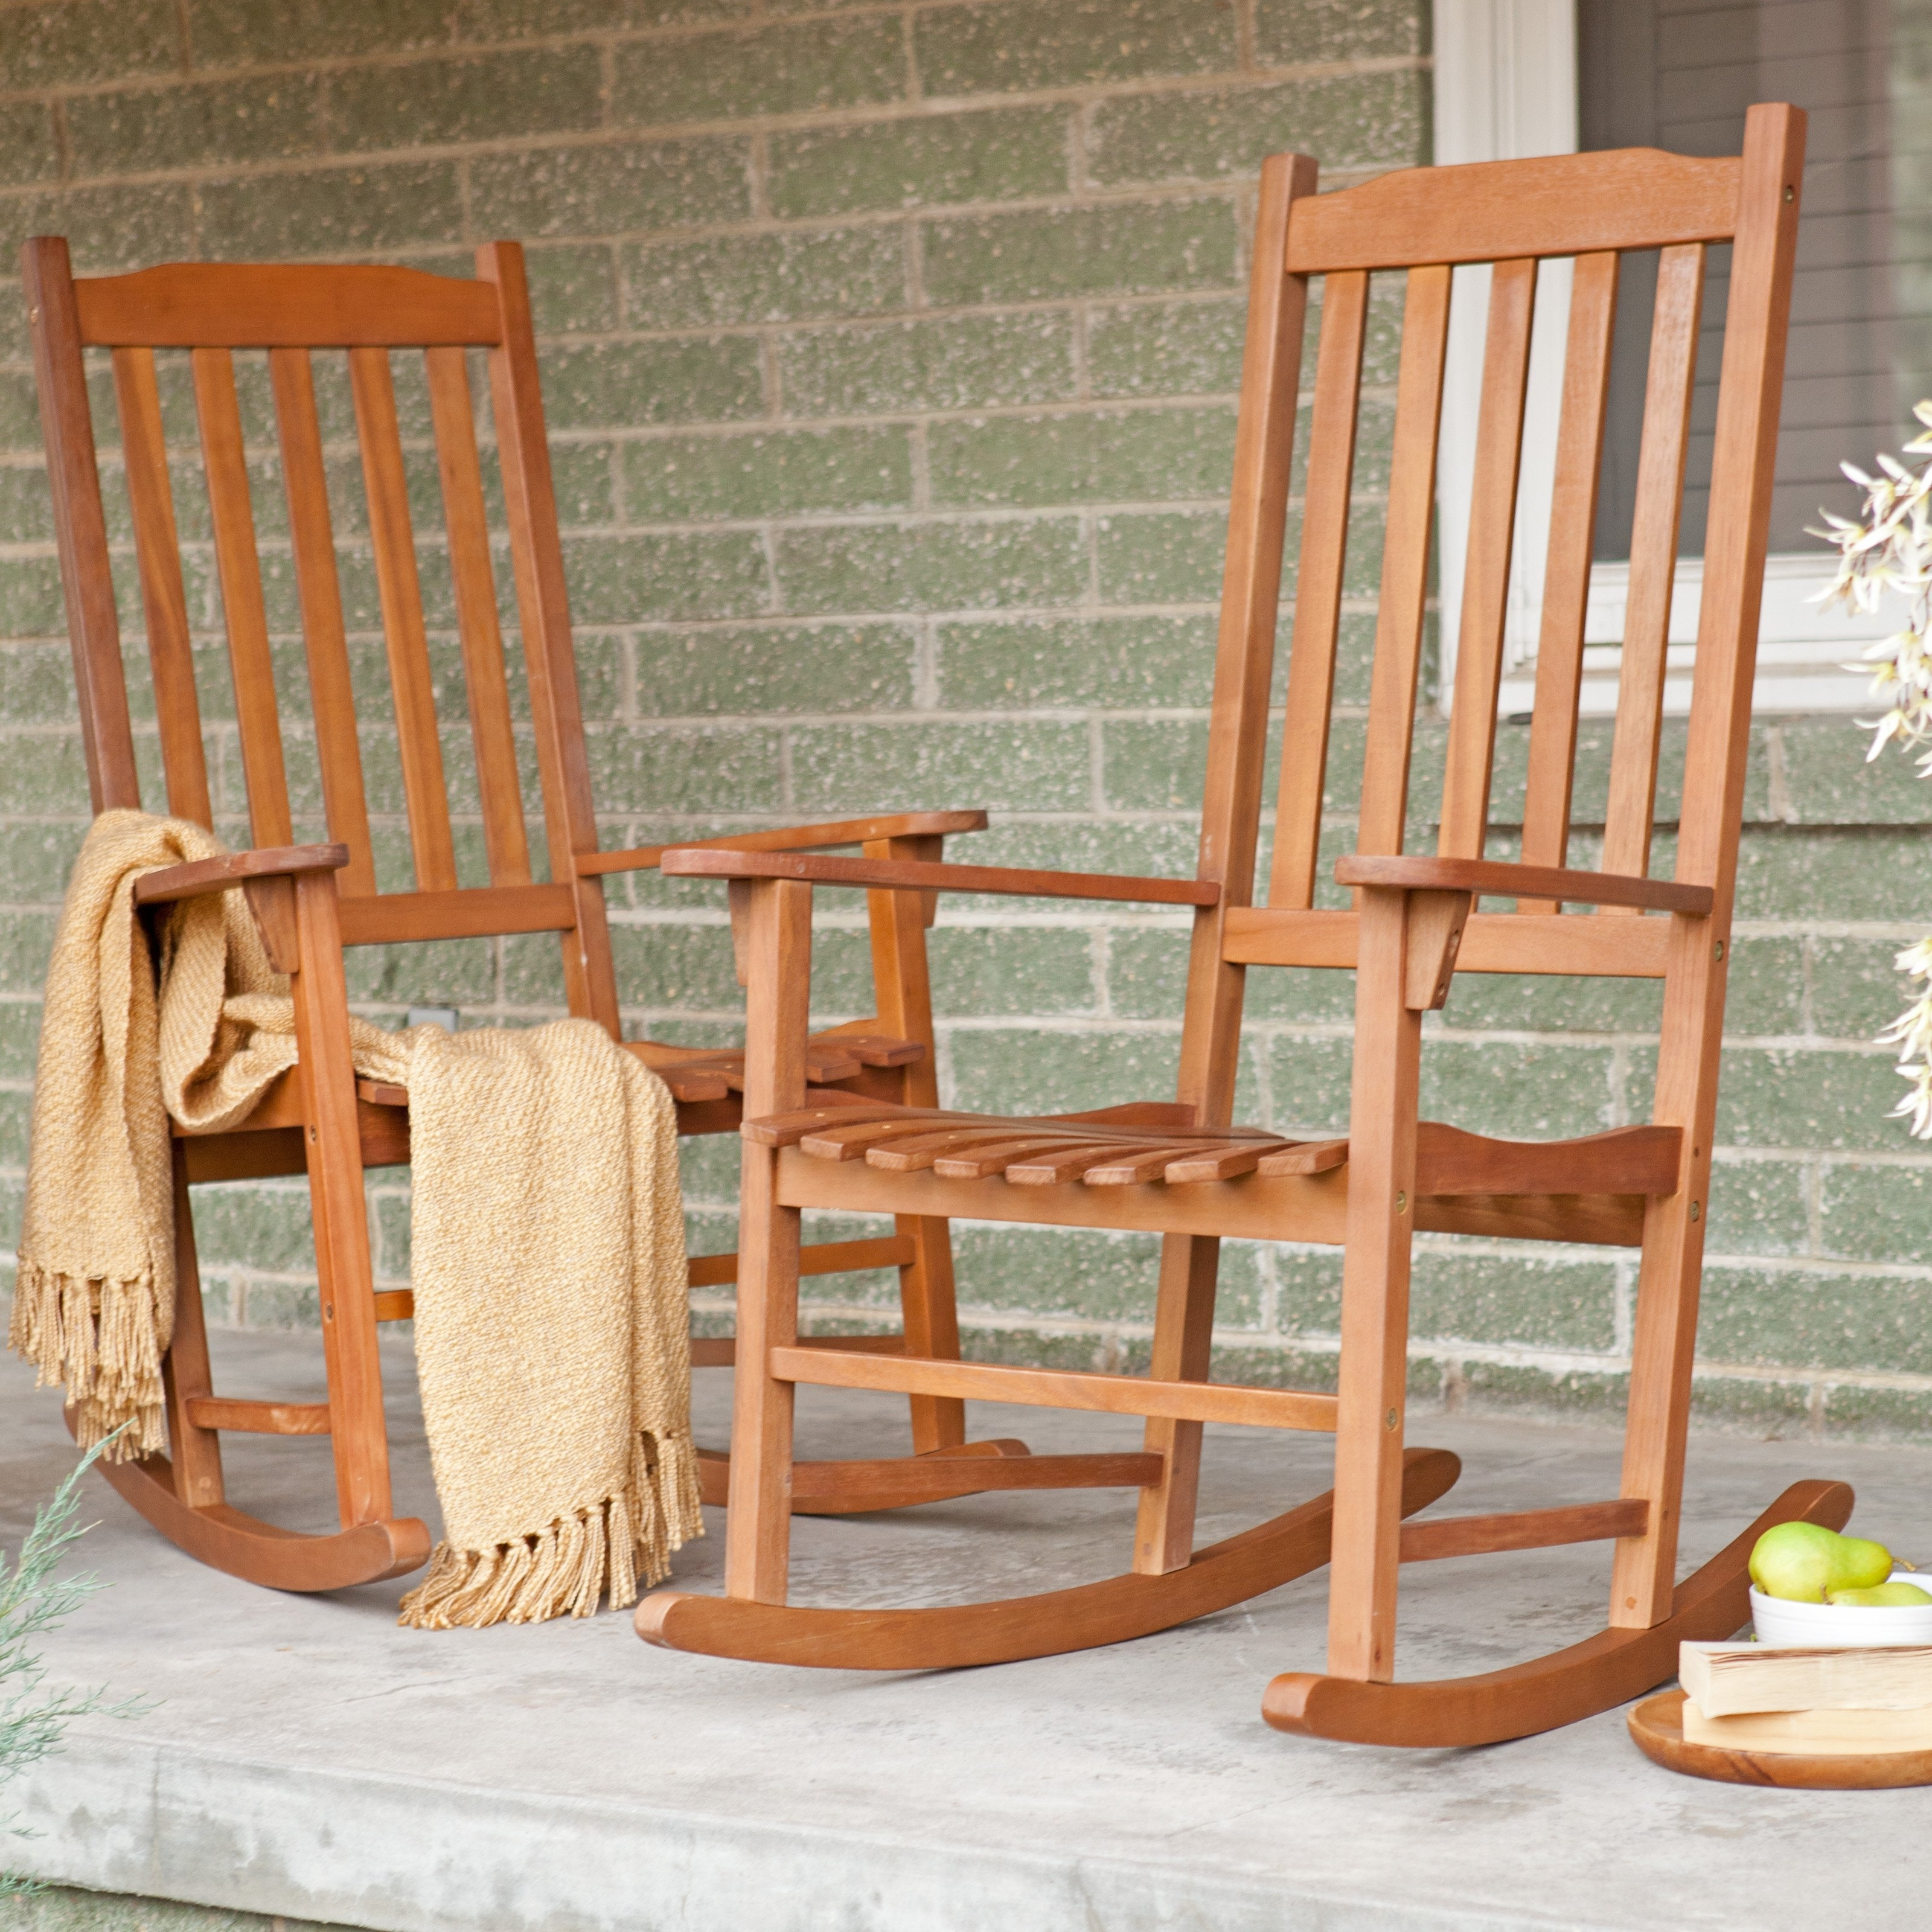 Coral Coast Indoor/outdoor Mission Slat Rocking Chairs – Natural Regarding Outside Rocking Chair Sets (View 3 of 15)